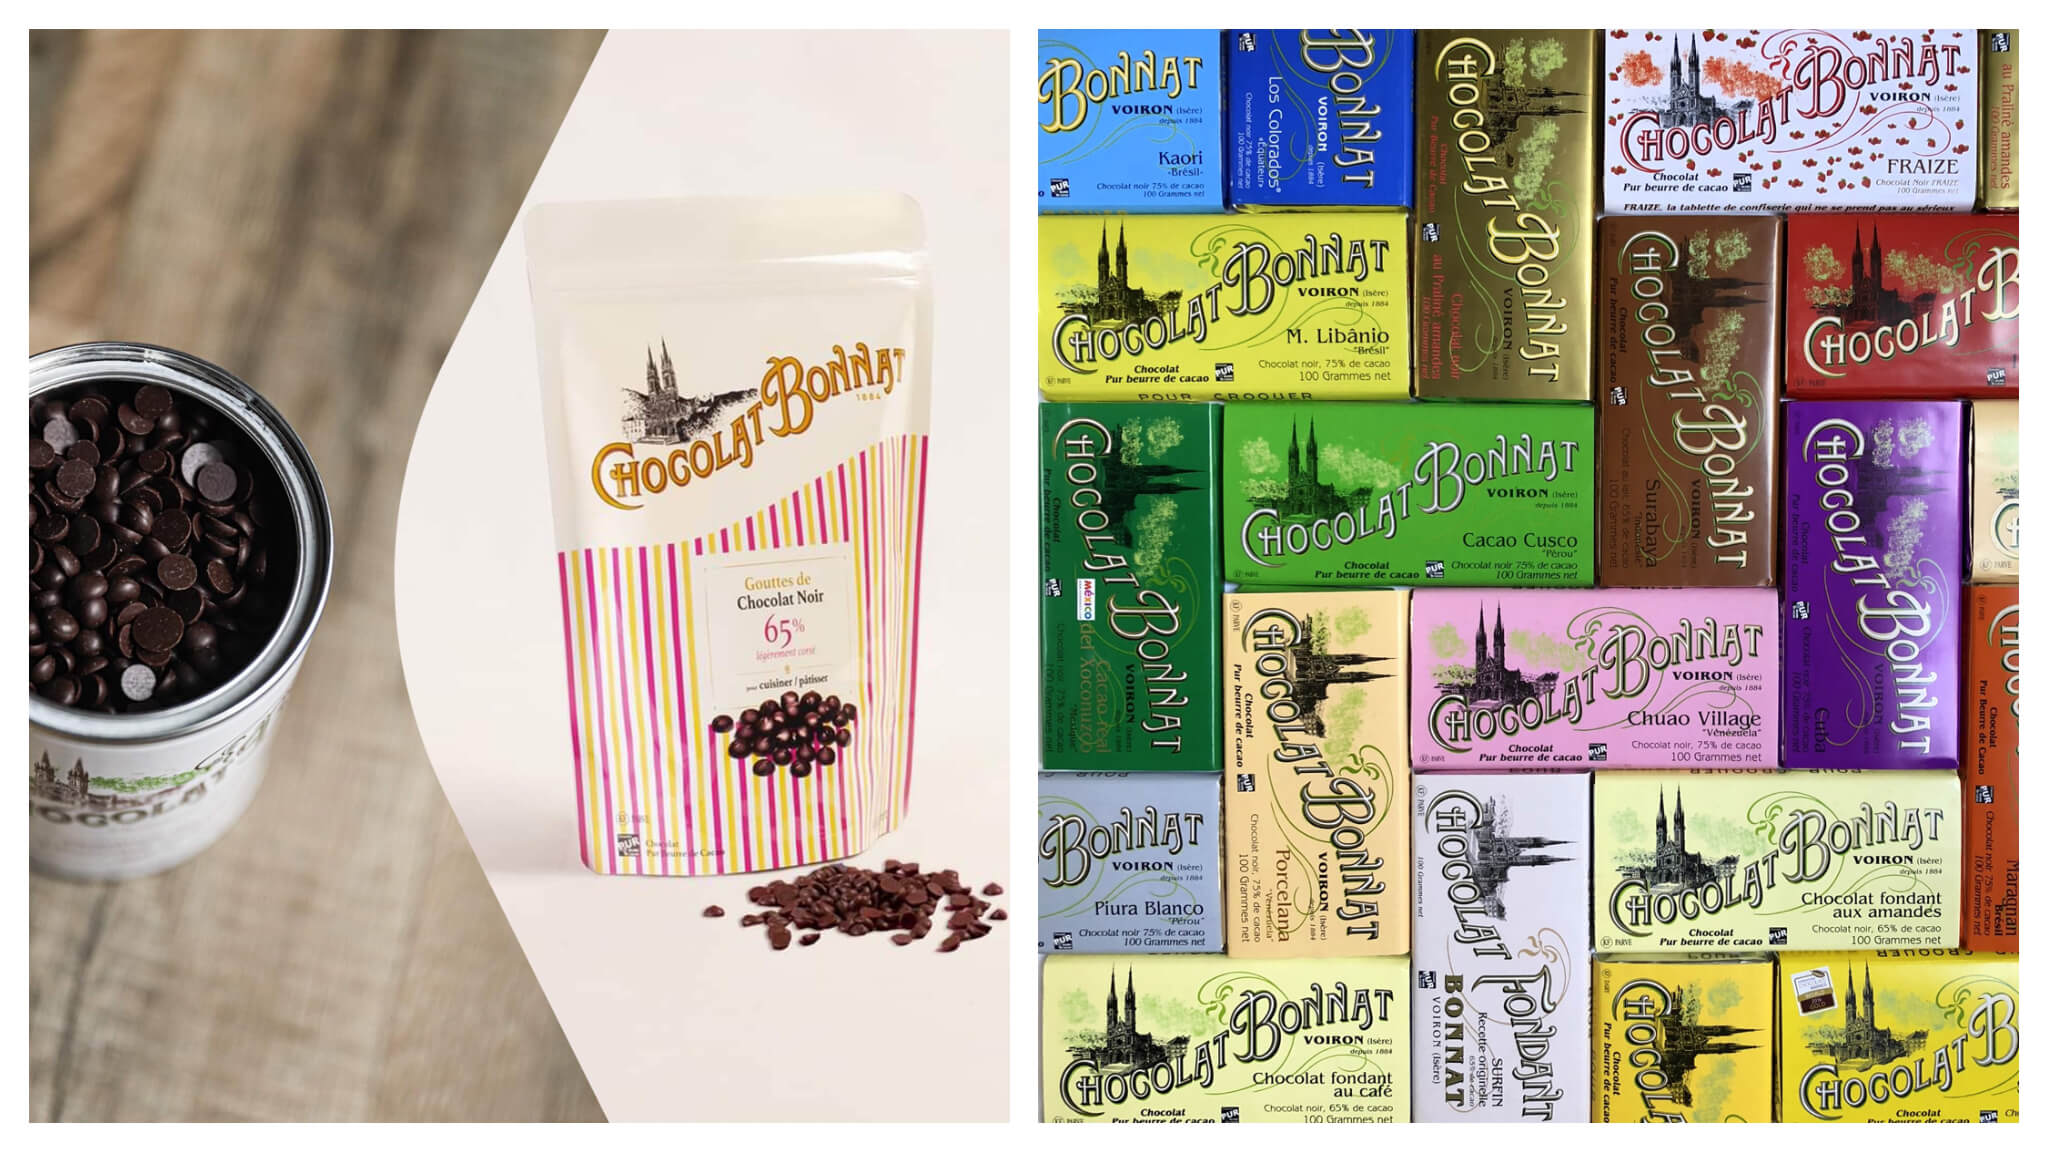 Left: a tin and bag of chocolates by French brand Bonnat. Right: a variety of chocolate bars by Bonnat.